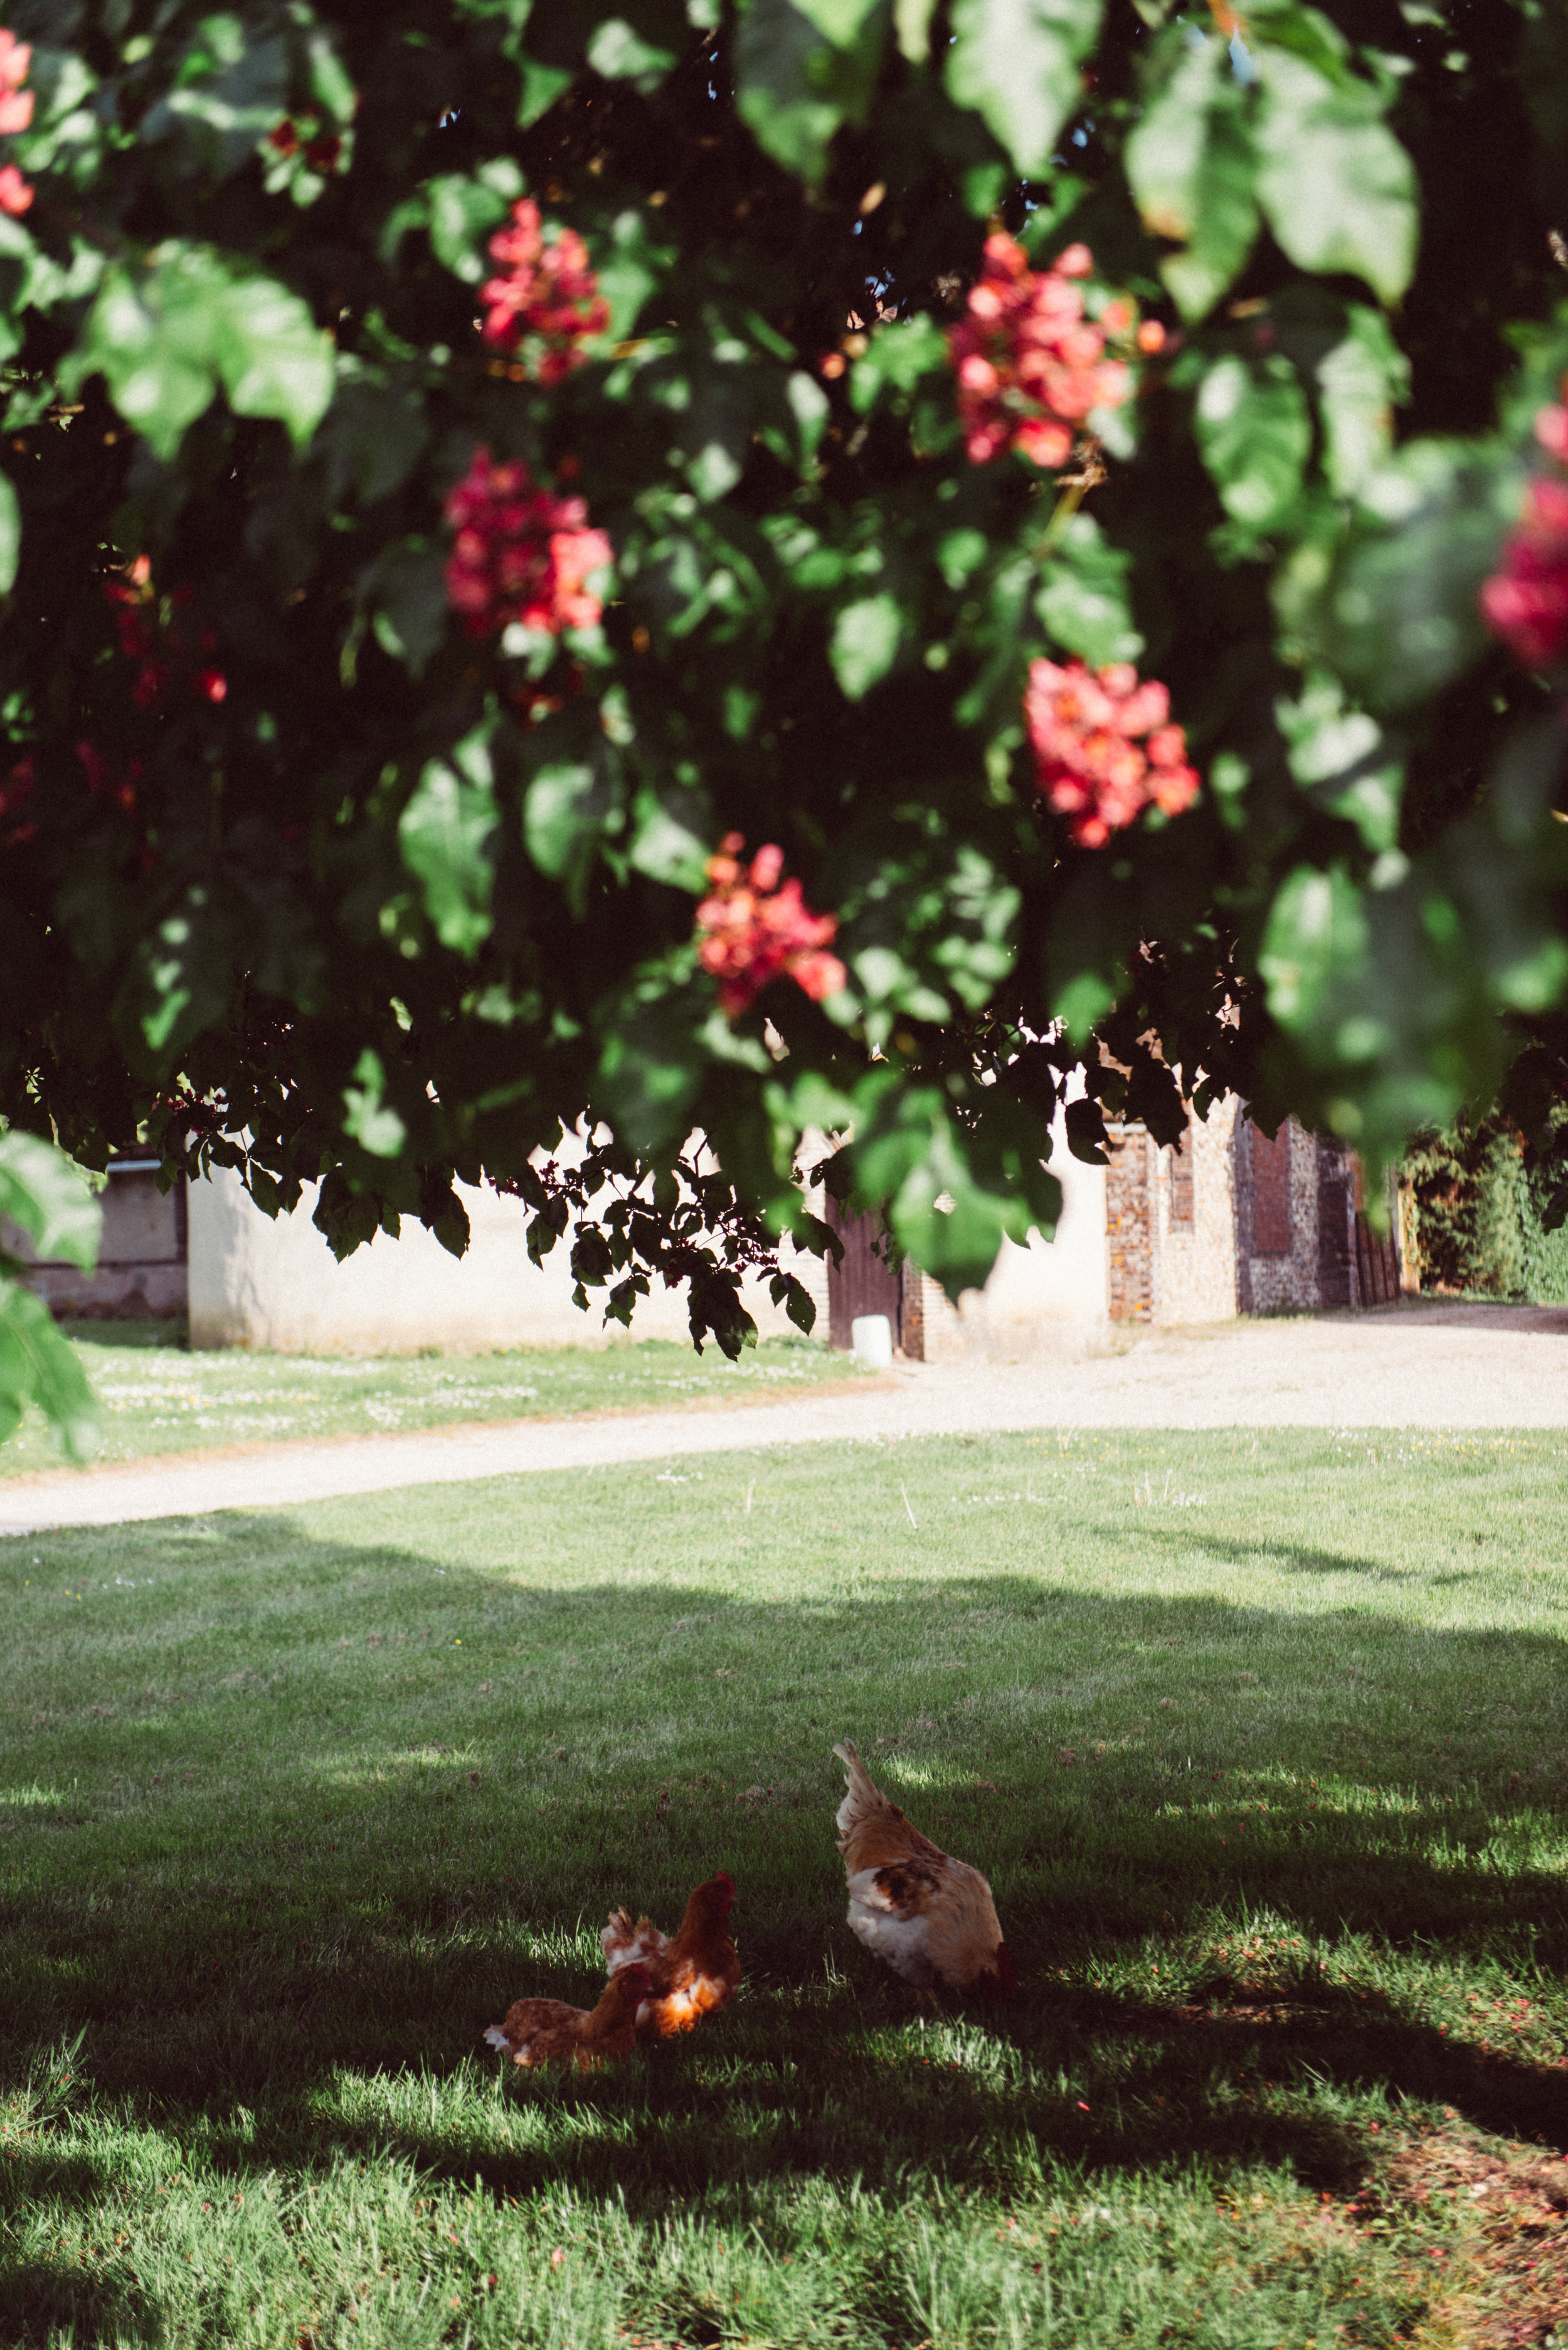 Our chickens under the chestnut tree